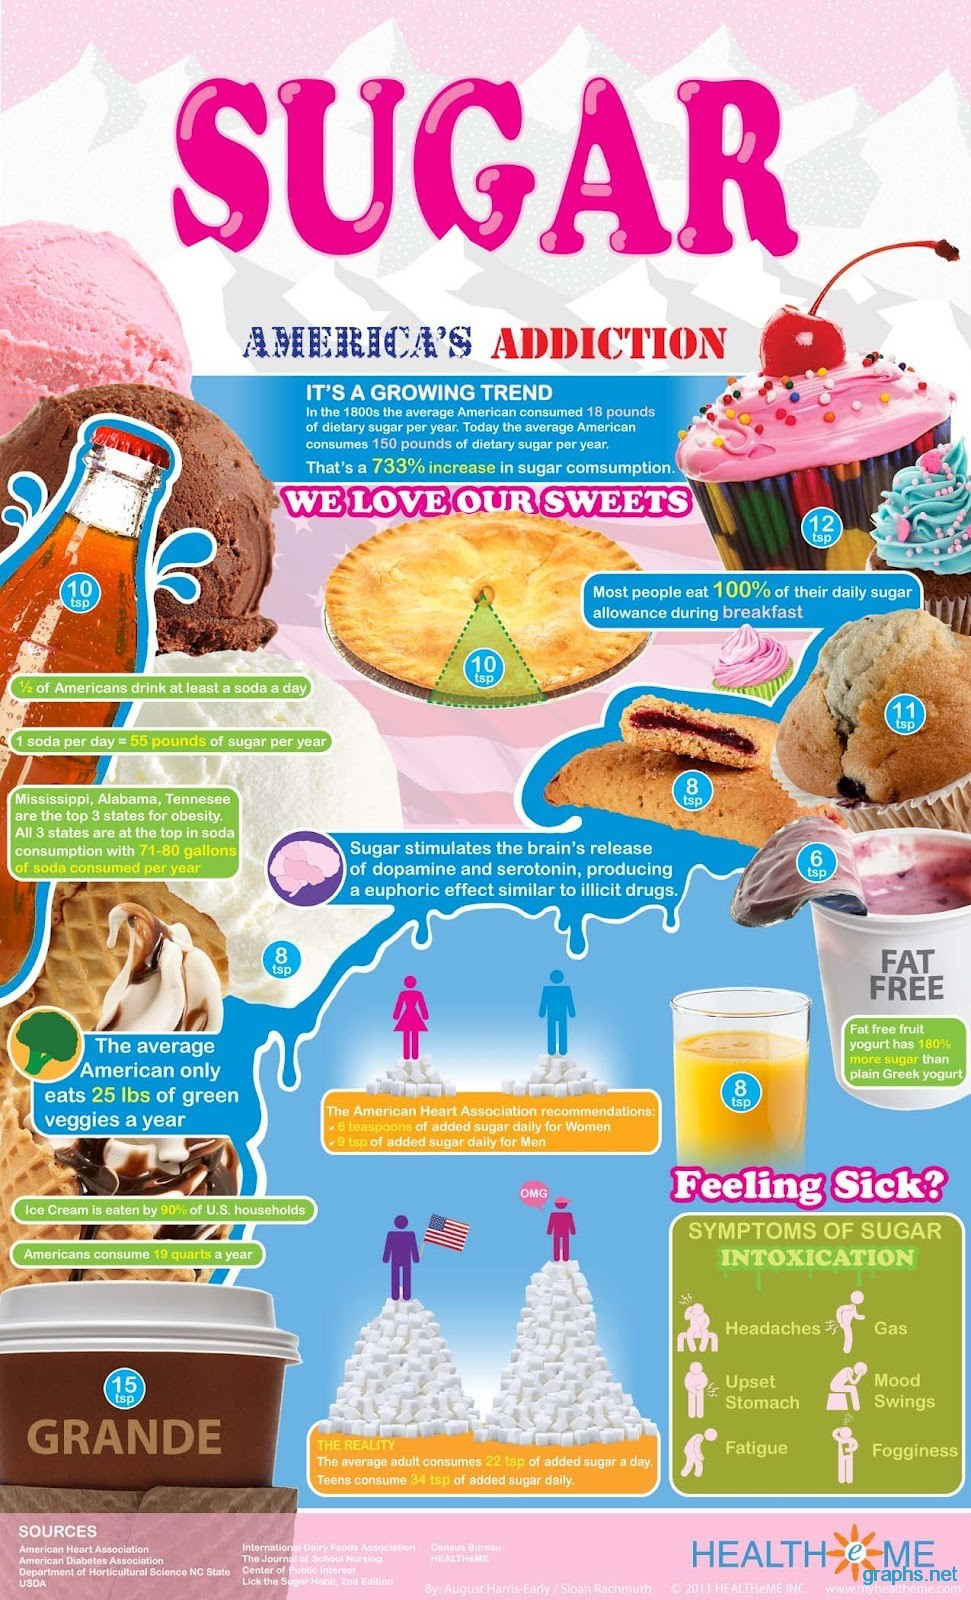 america's addiction to sugar